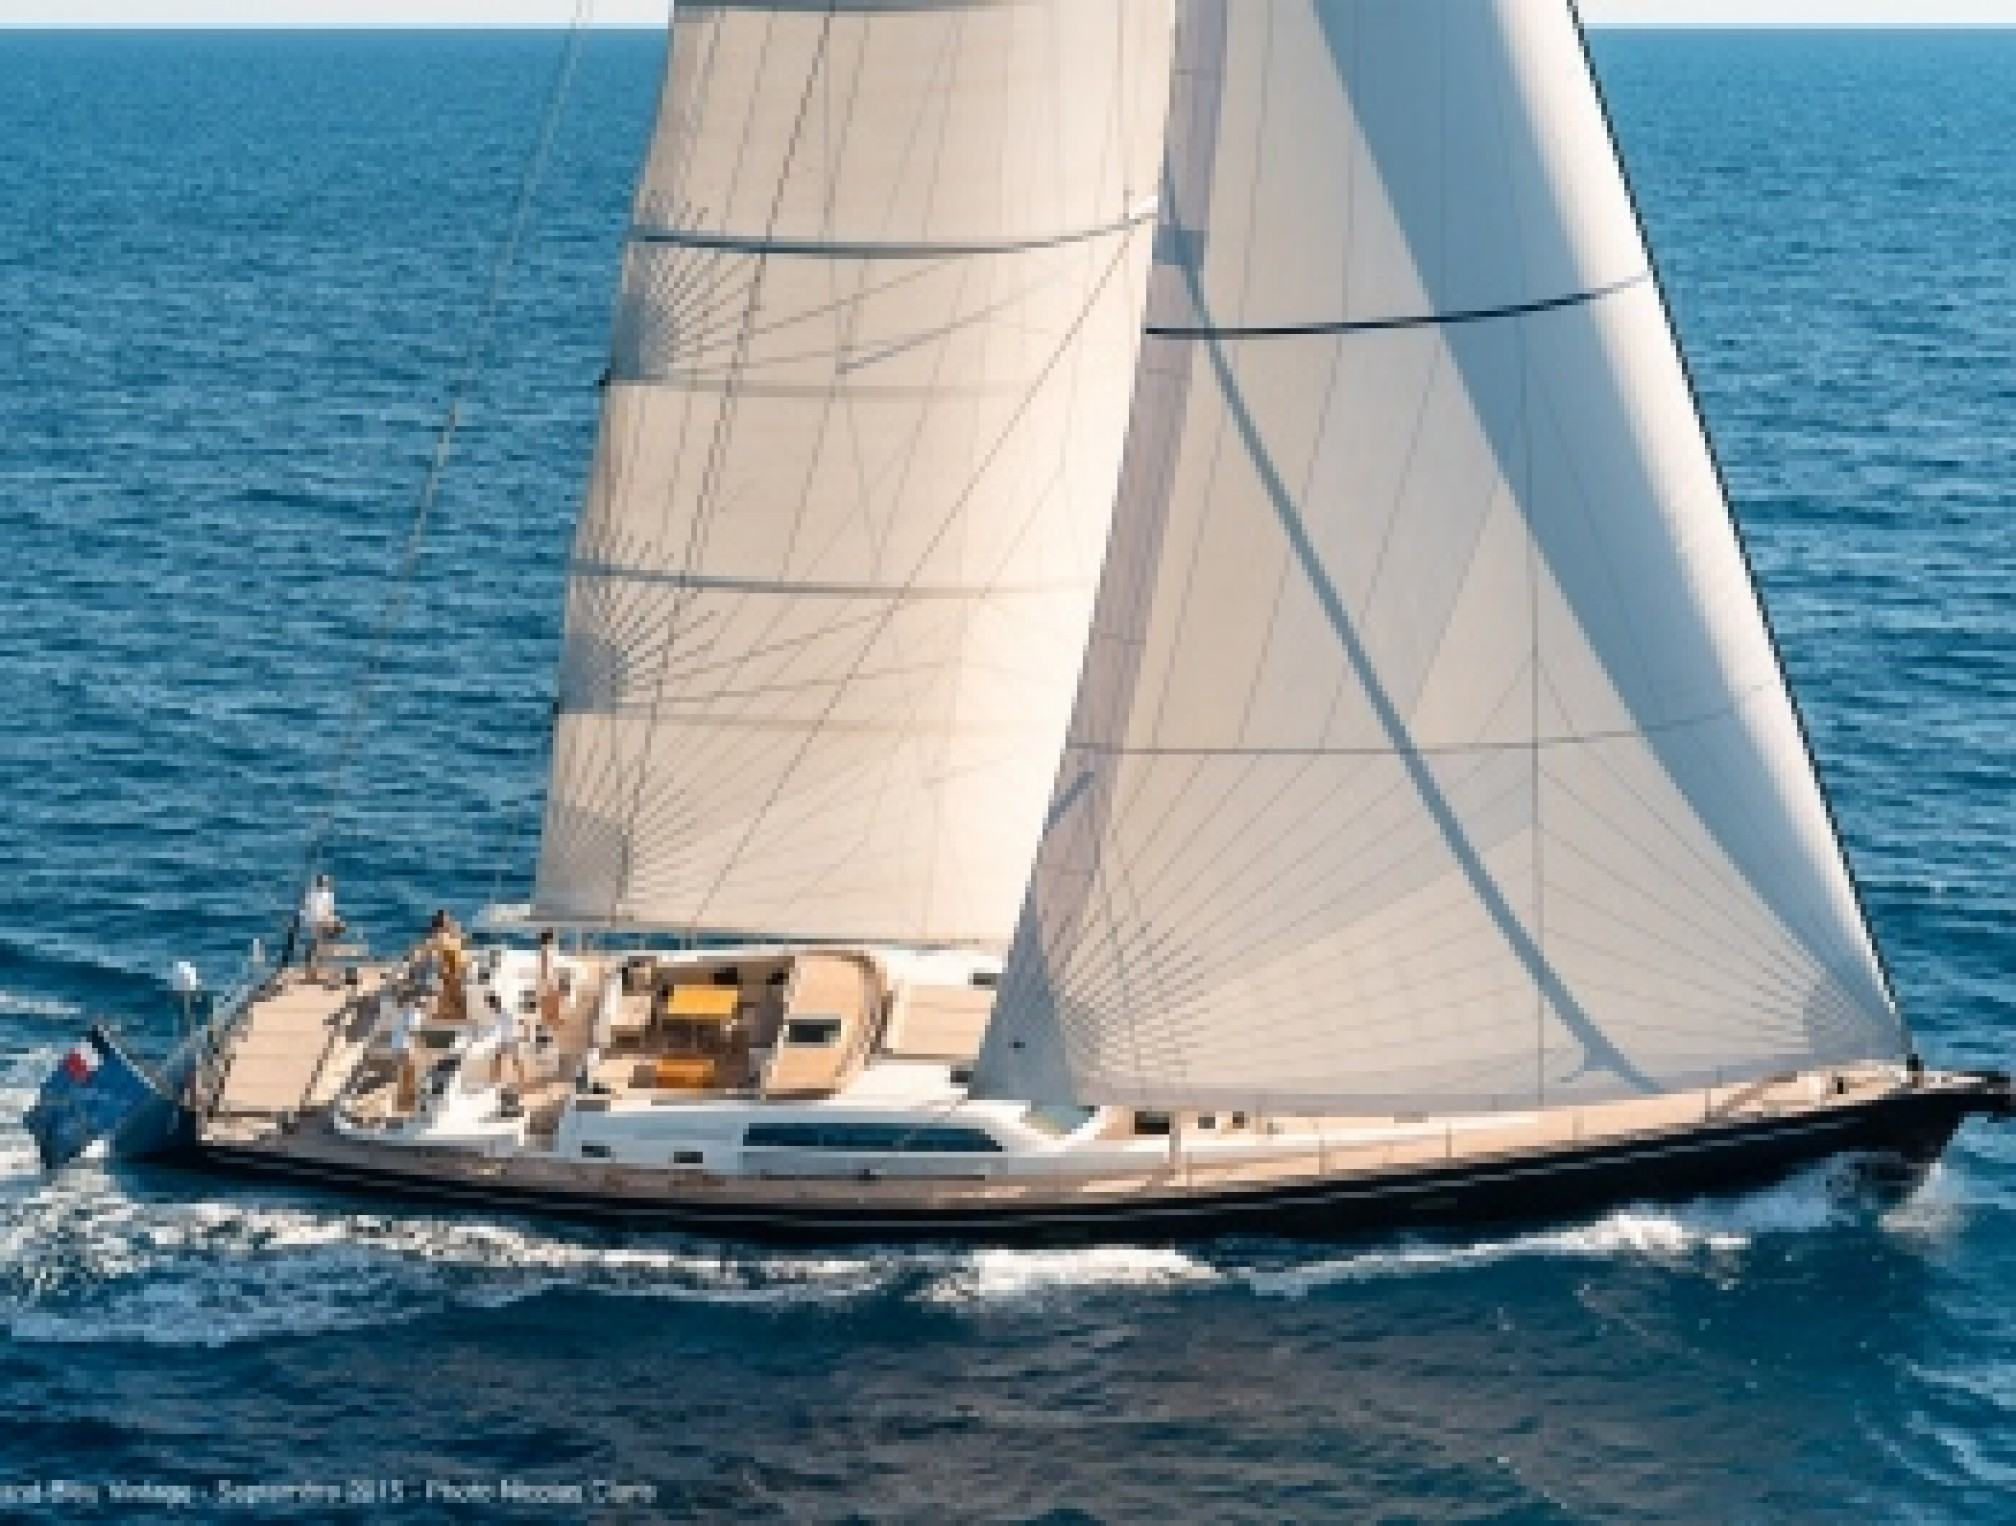 Grand Bleu Vintage luxury sailboat sailing